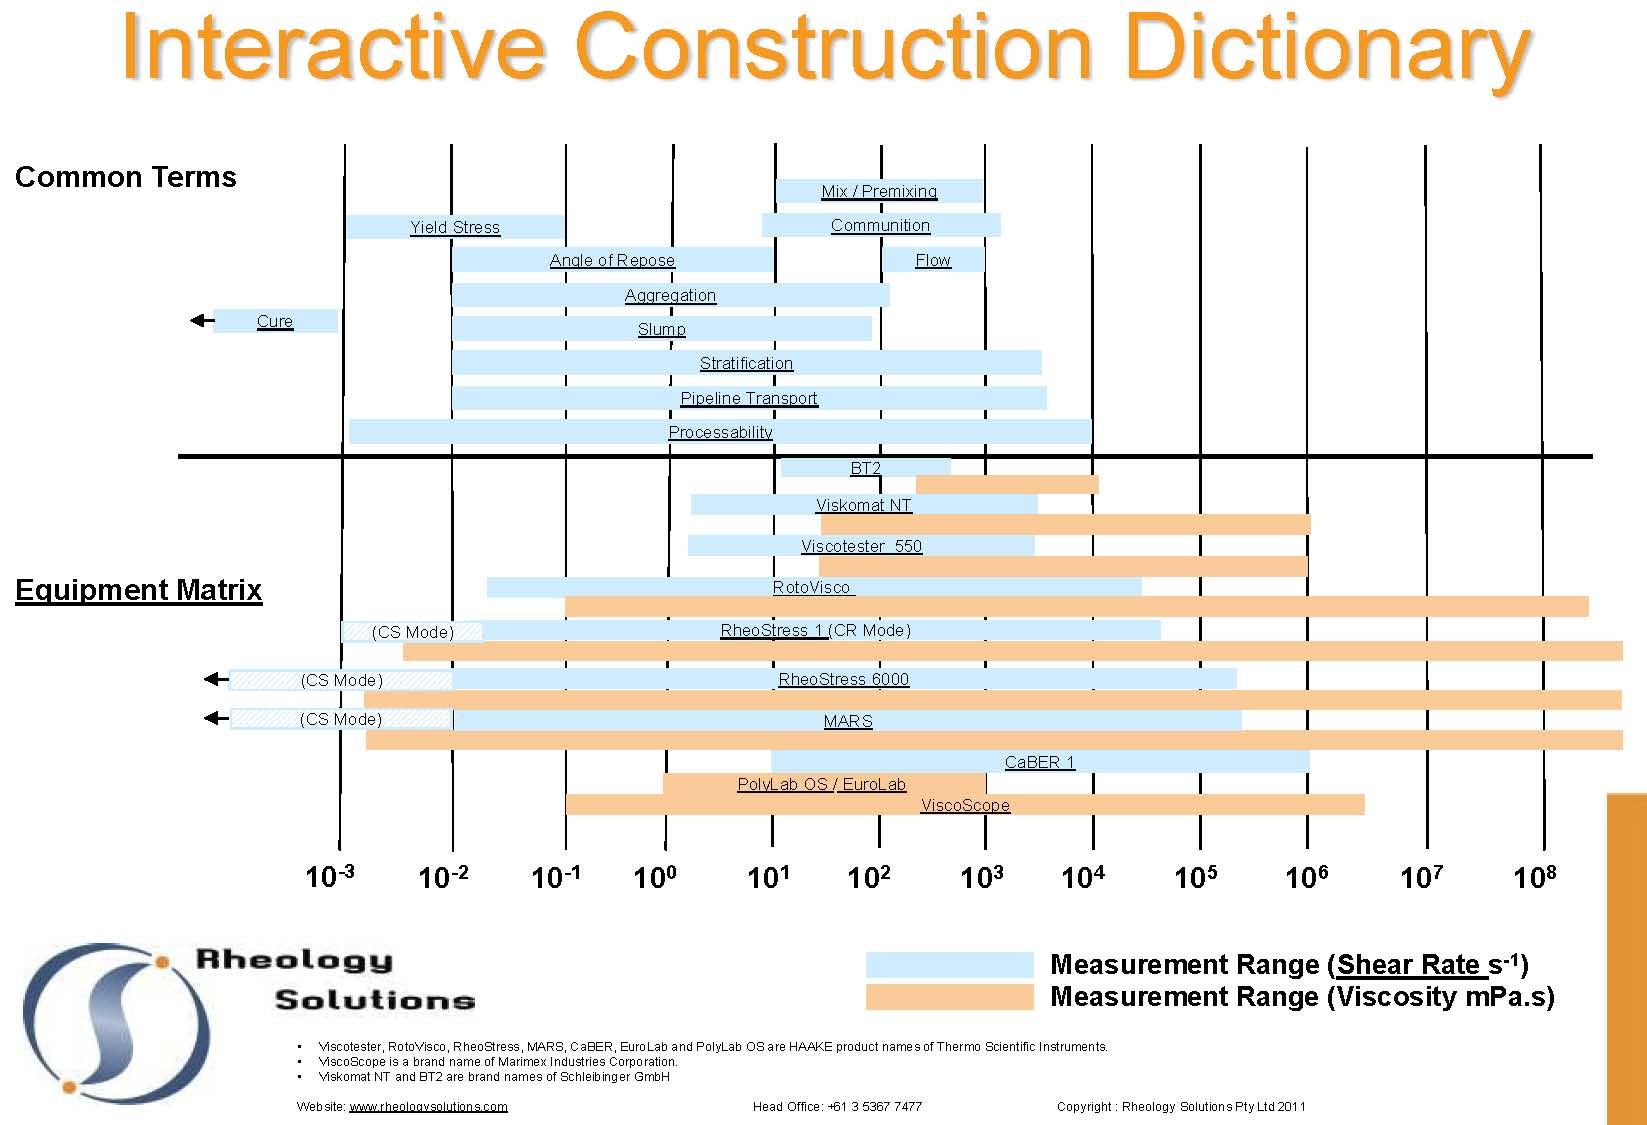 Interactive Dictionary Building Construction